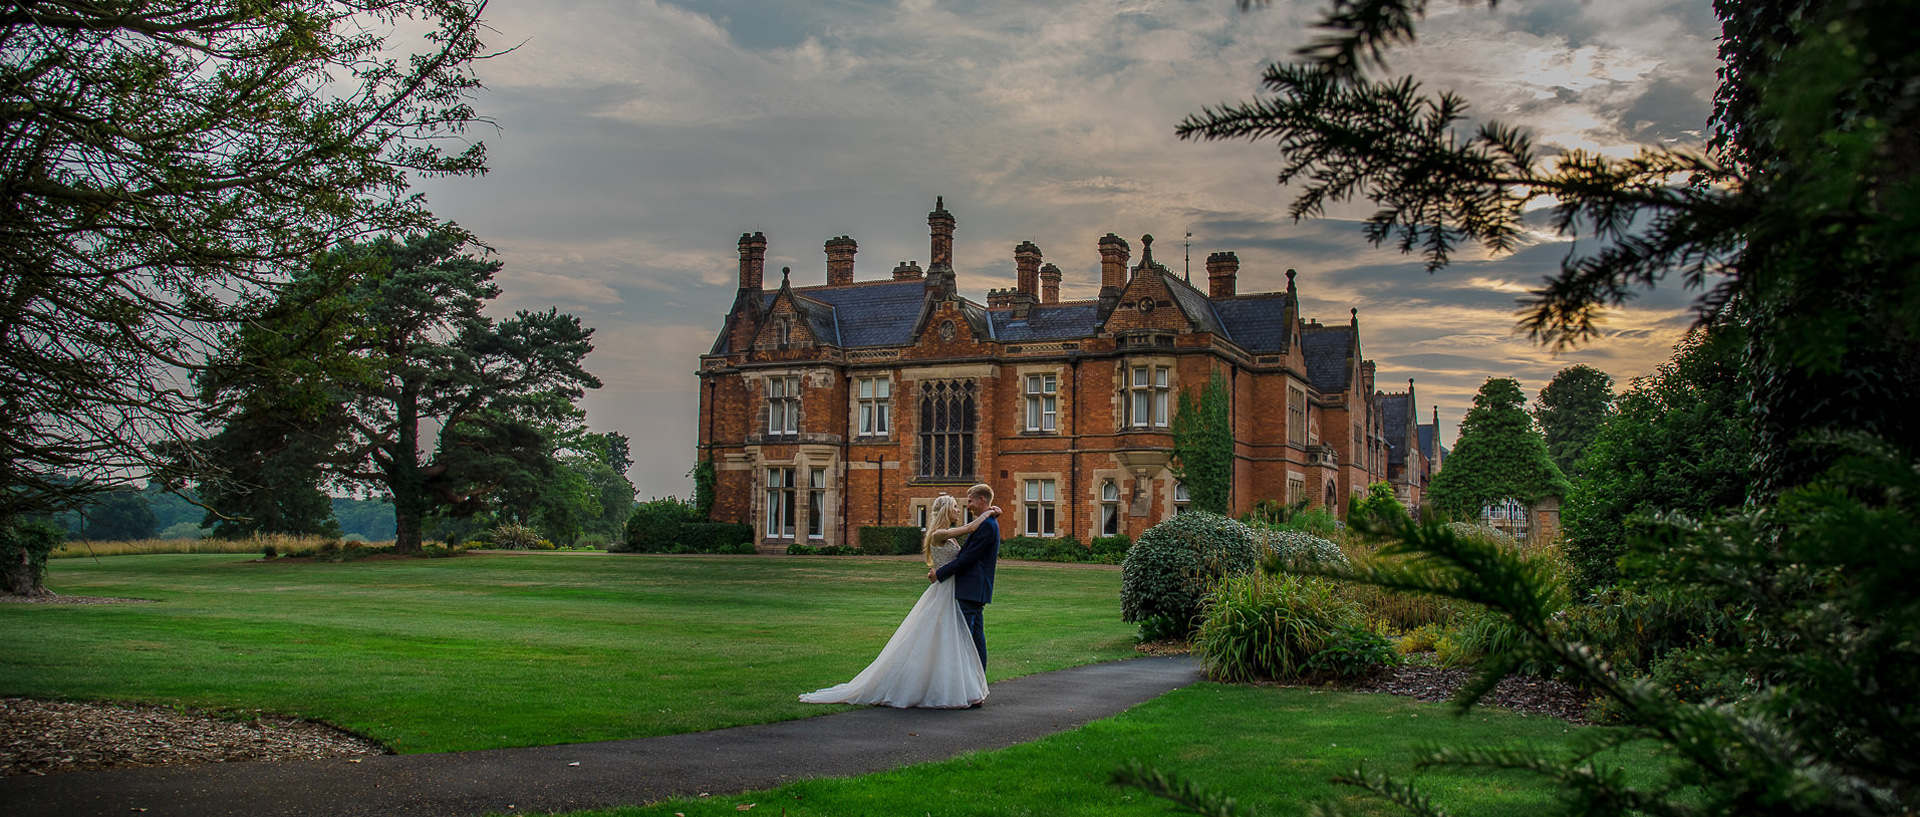 Claire and Liam's wedding at Rockliffe Hall